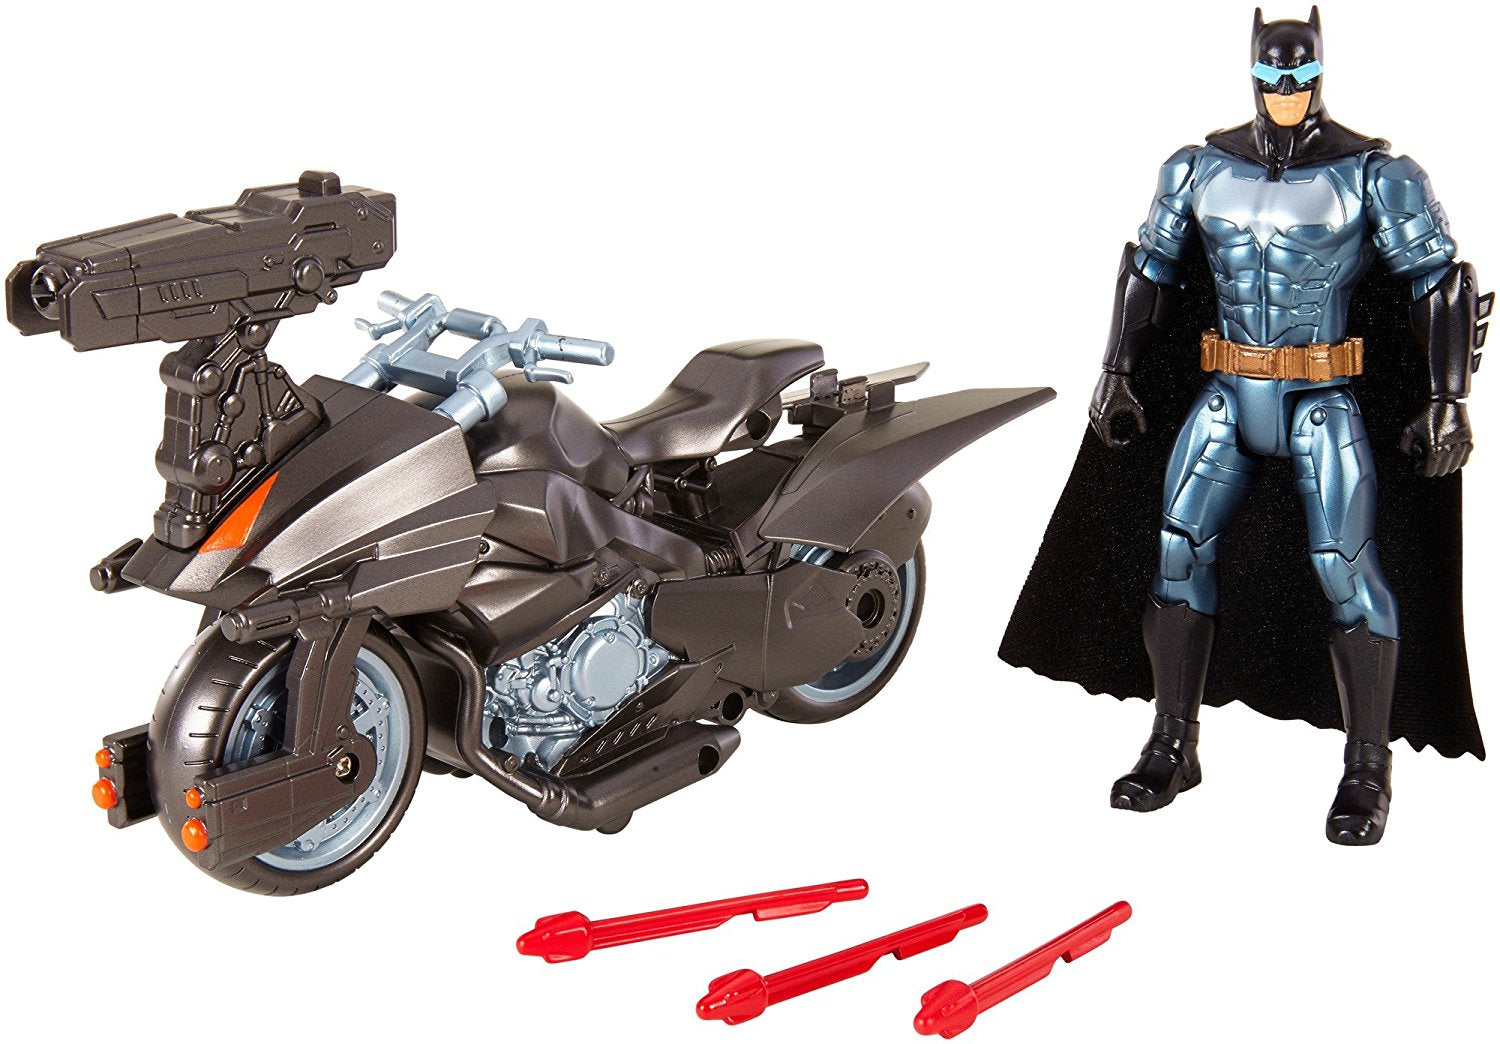 Mattel Justice League Batman™ & Batcycle™ Vehicle And Figure FGG53